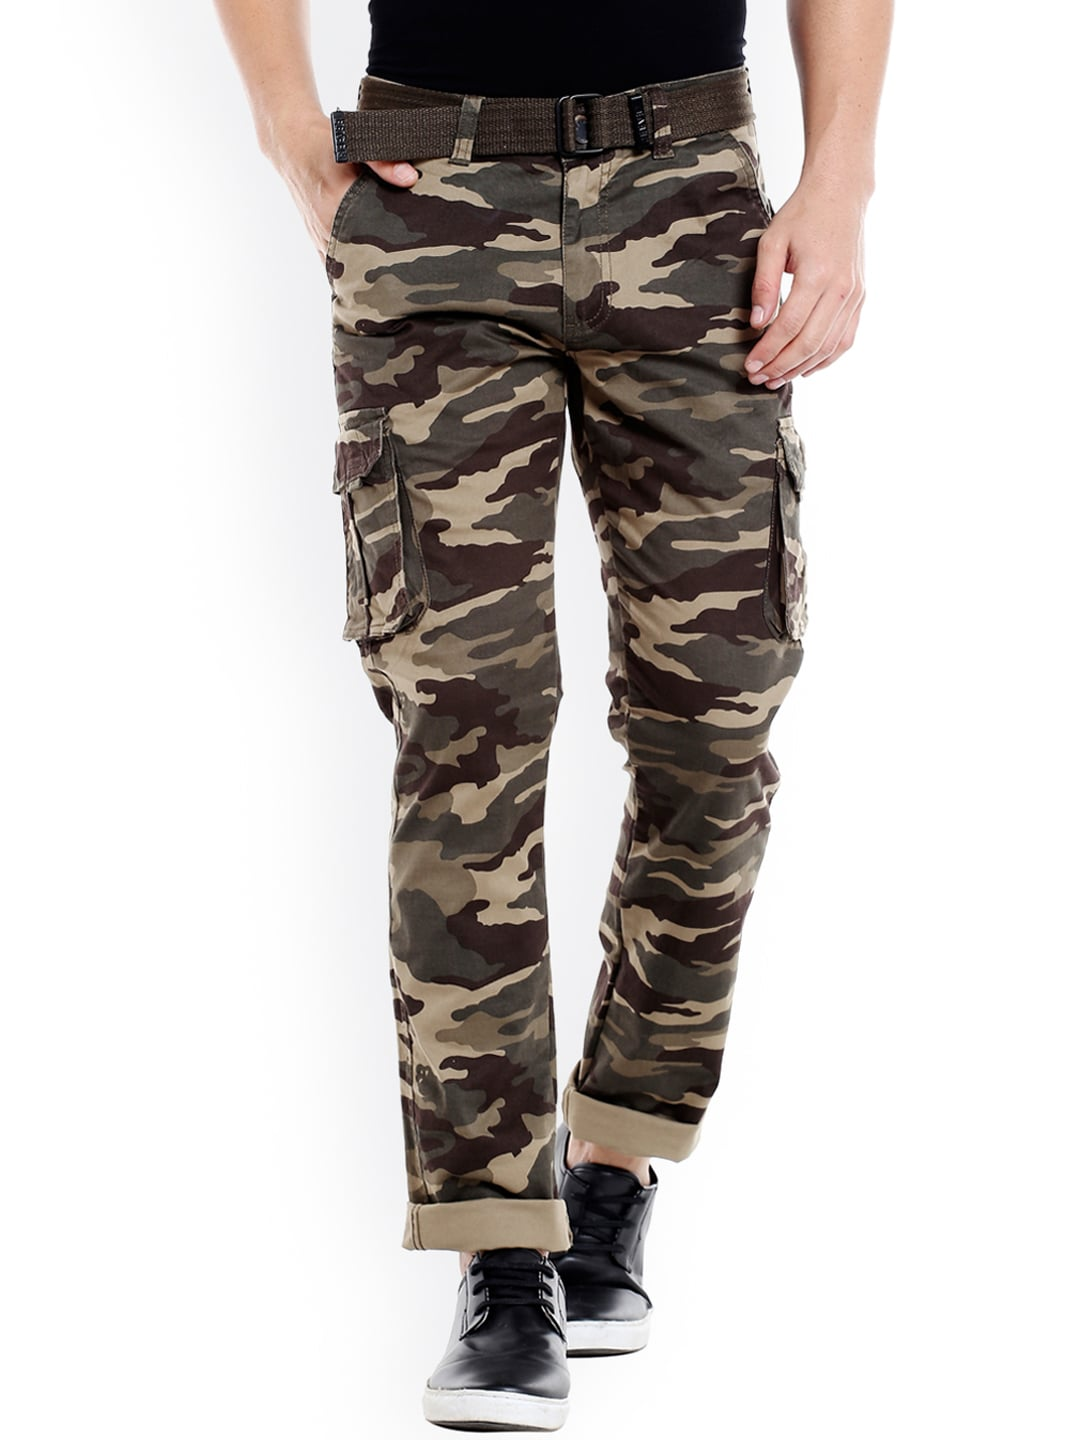 128f4cf59dc Camouflage Pants - Buy Camo Army Cargo Pants for Men   Women